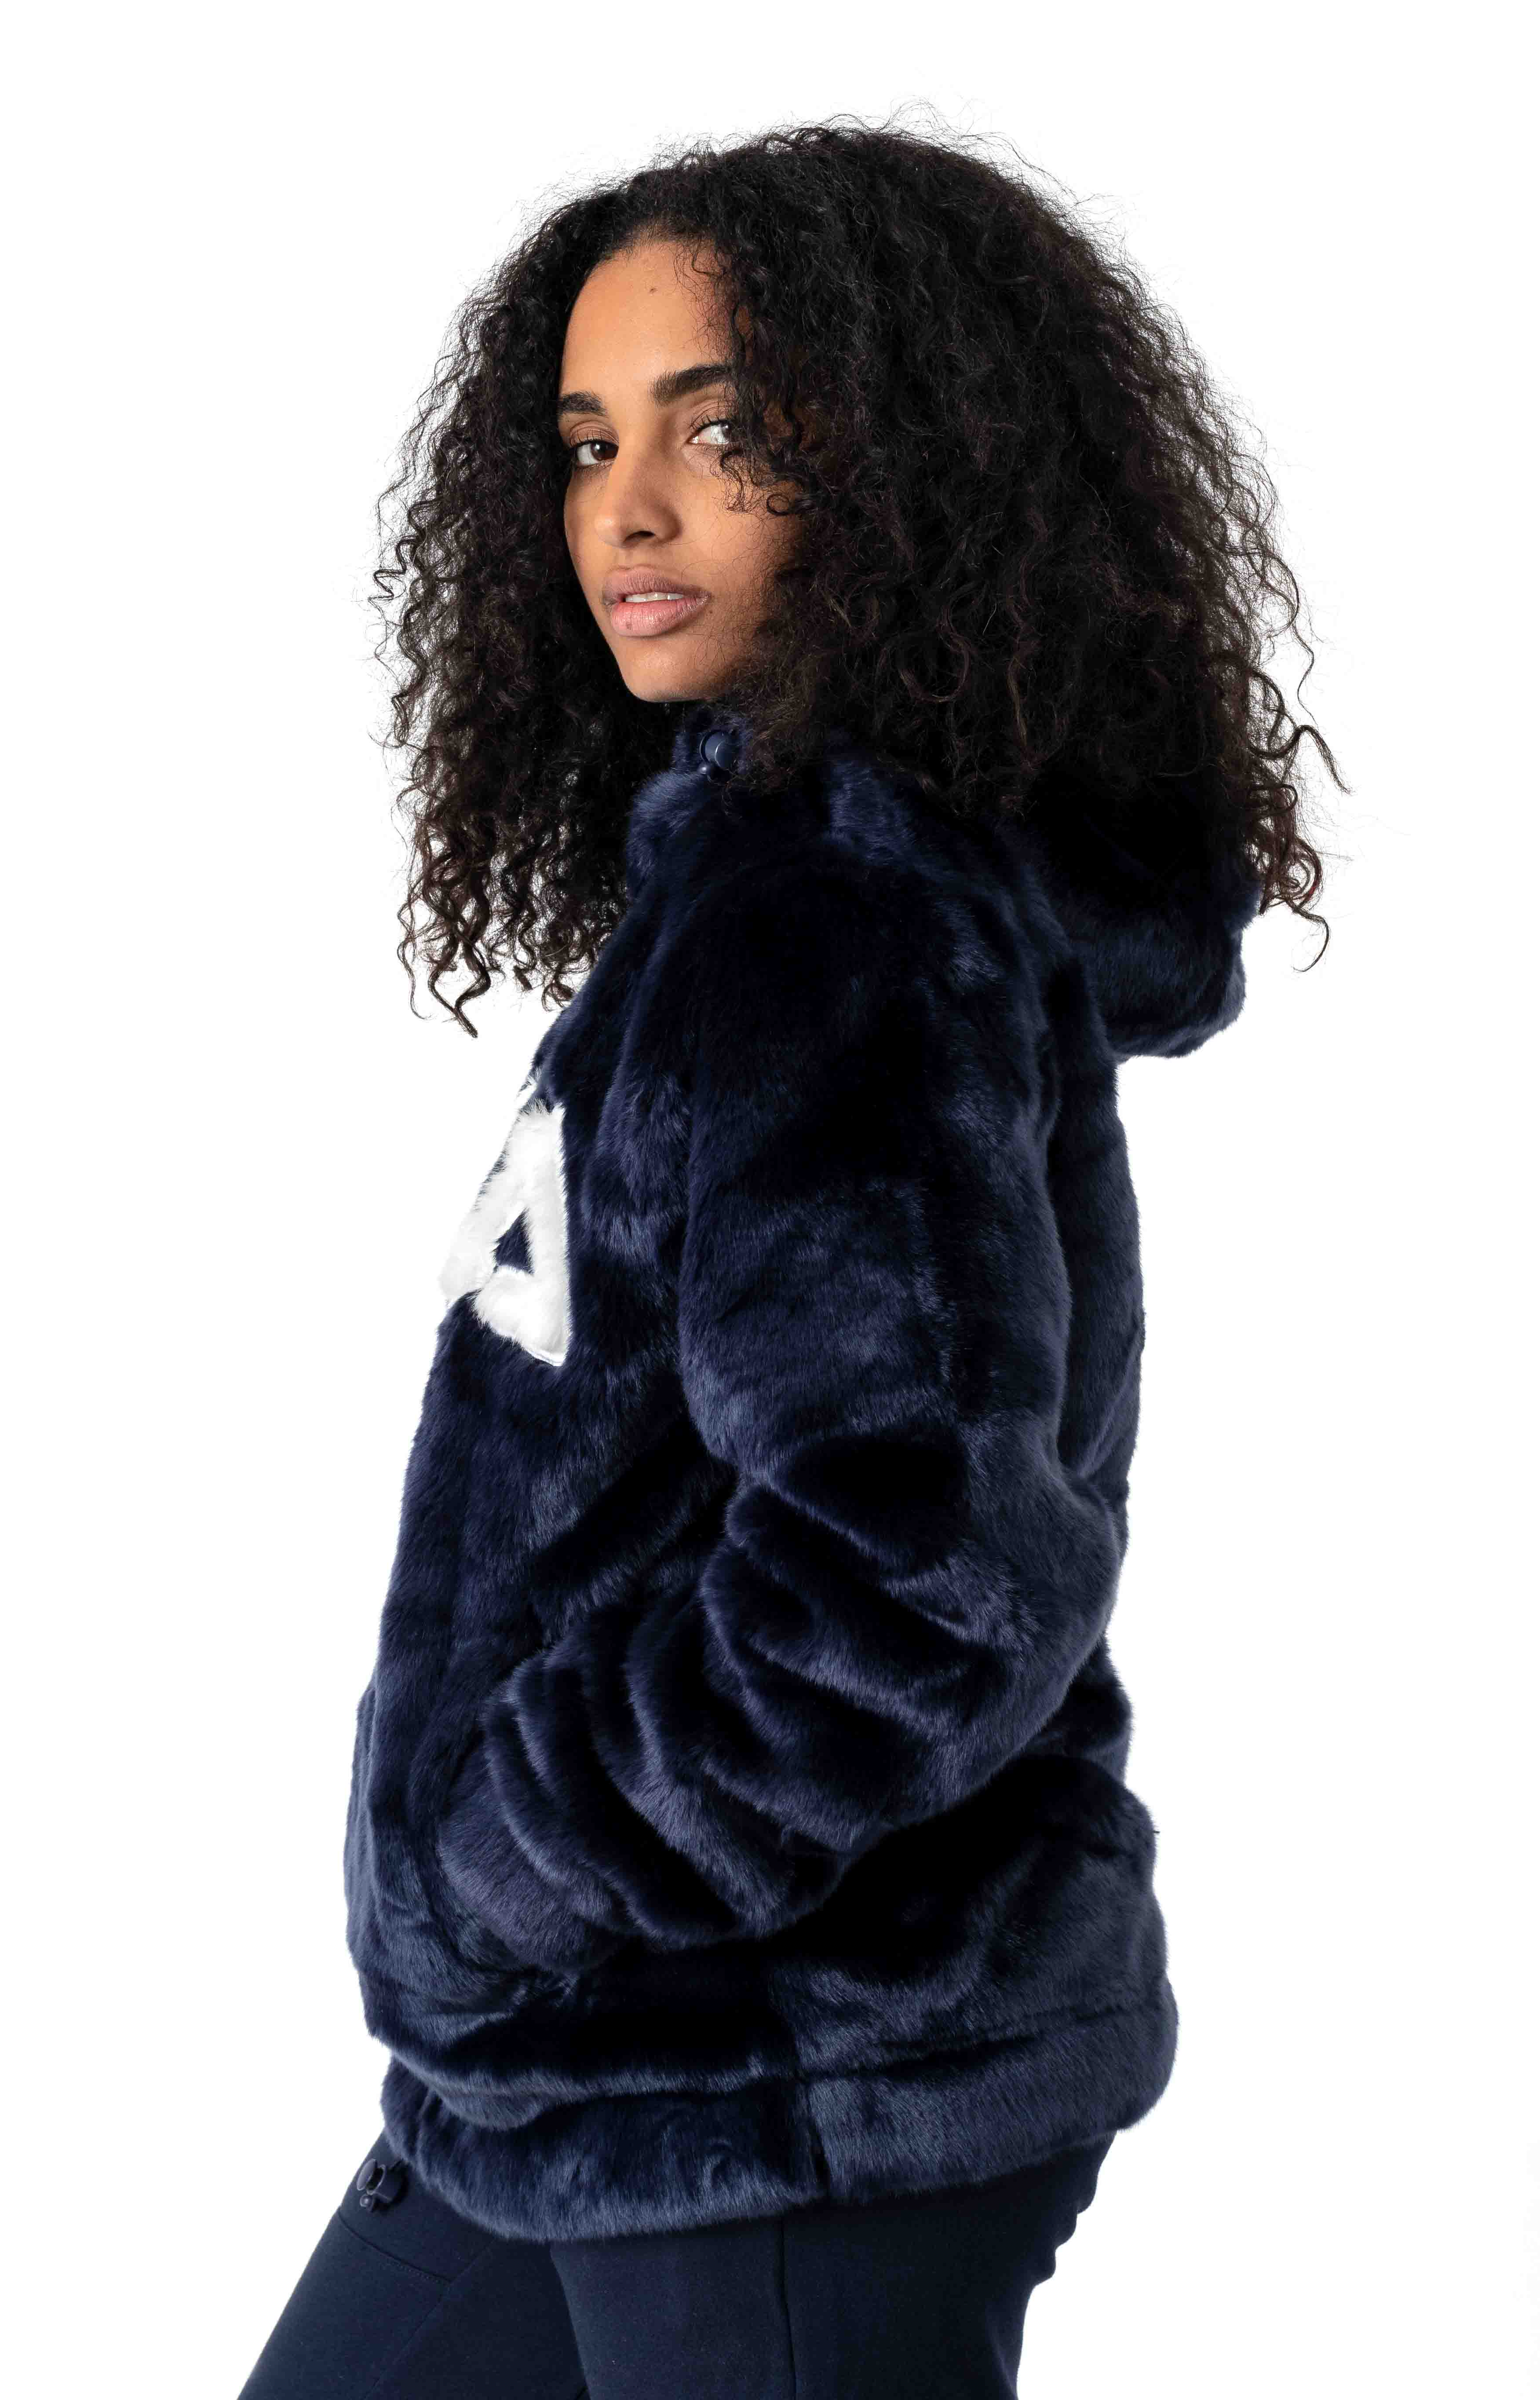 Dolly Oversized Pullover Hoodie - Peacoat 2